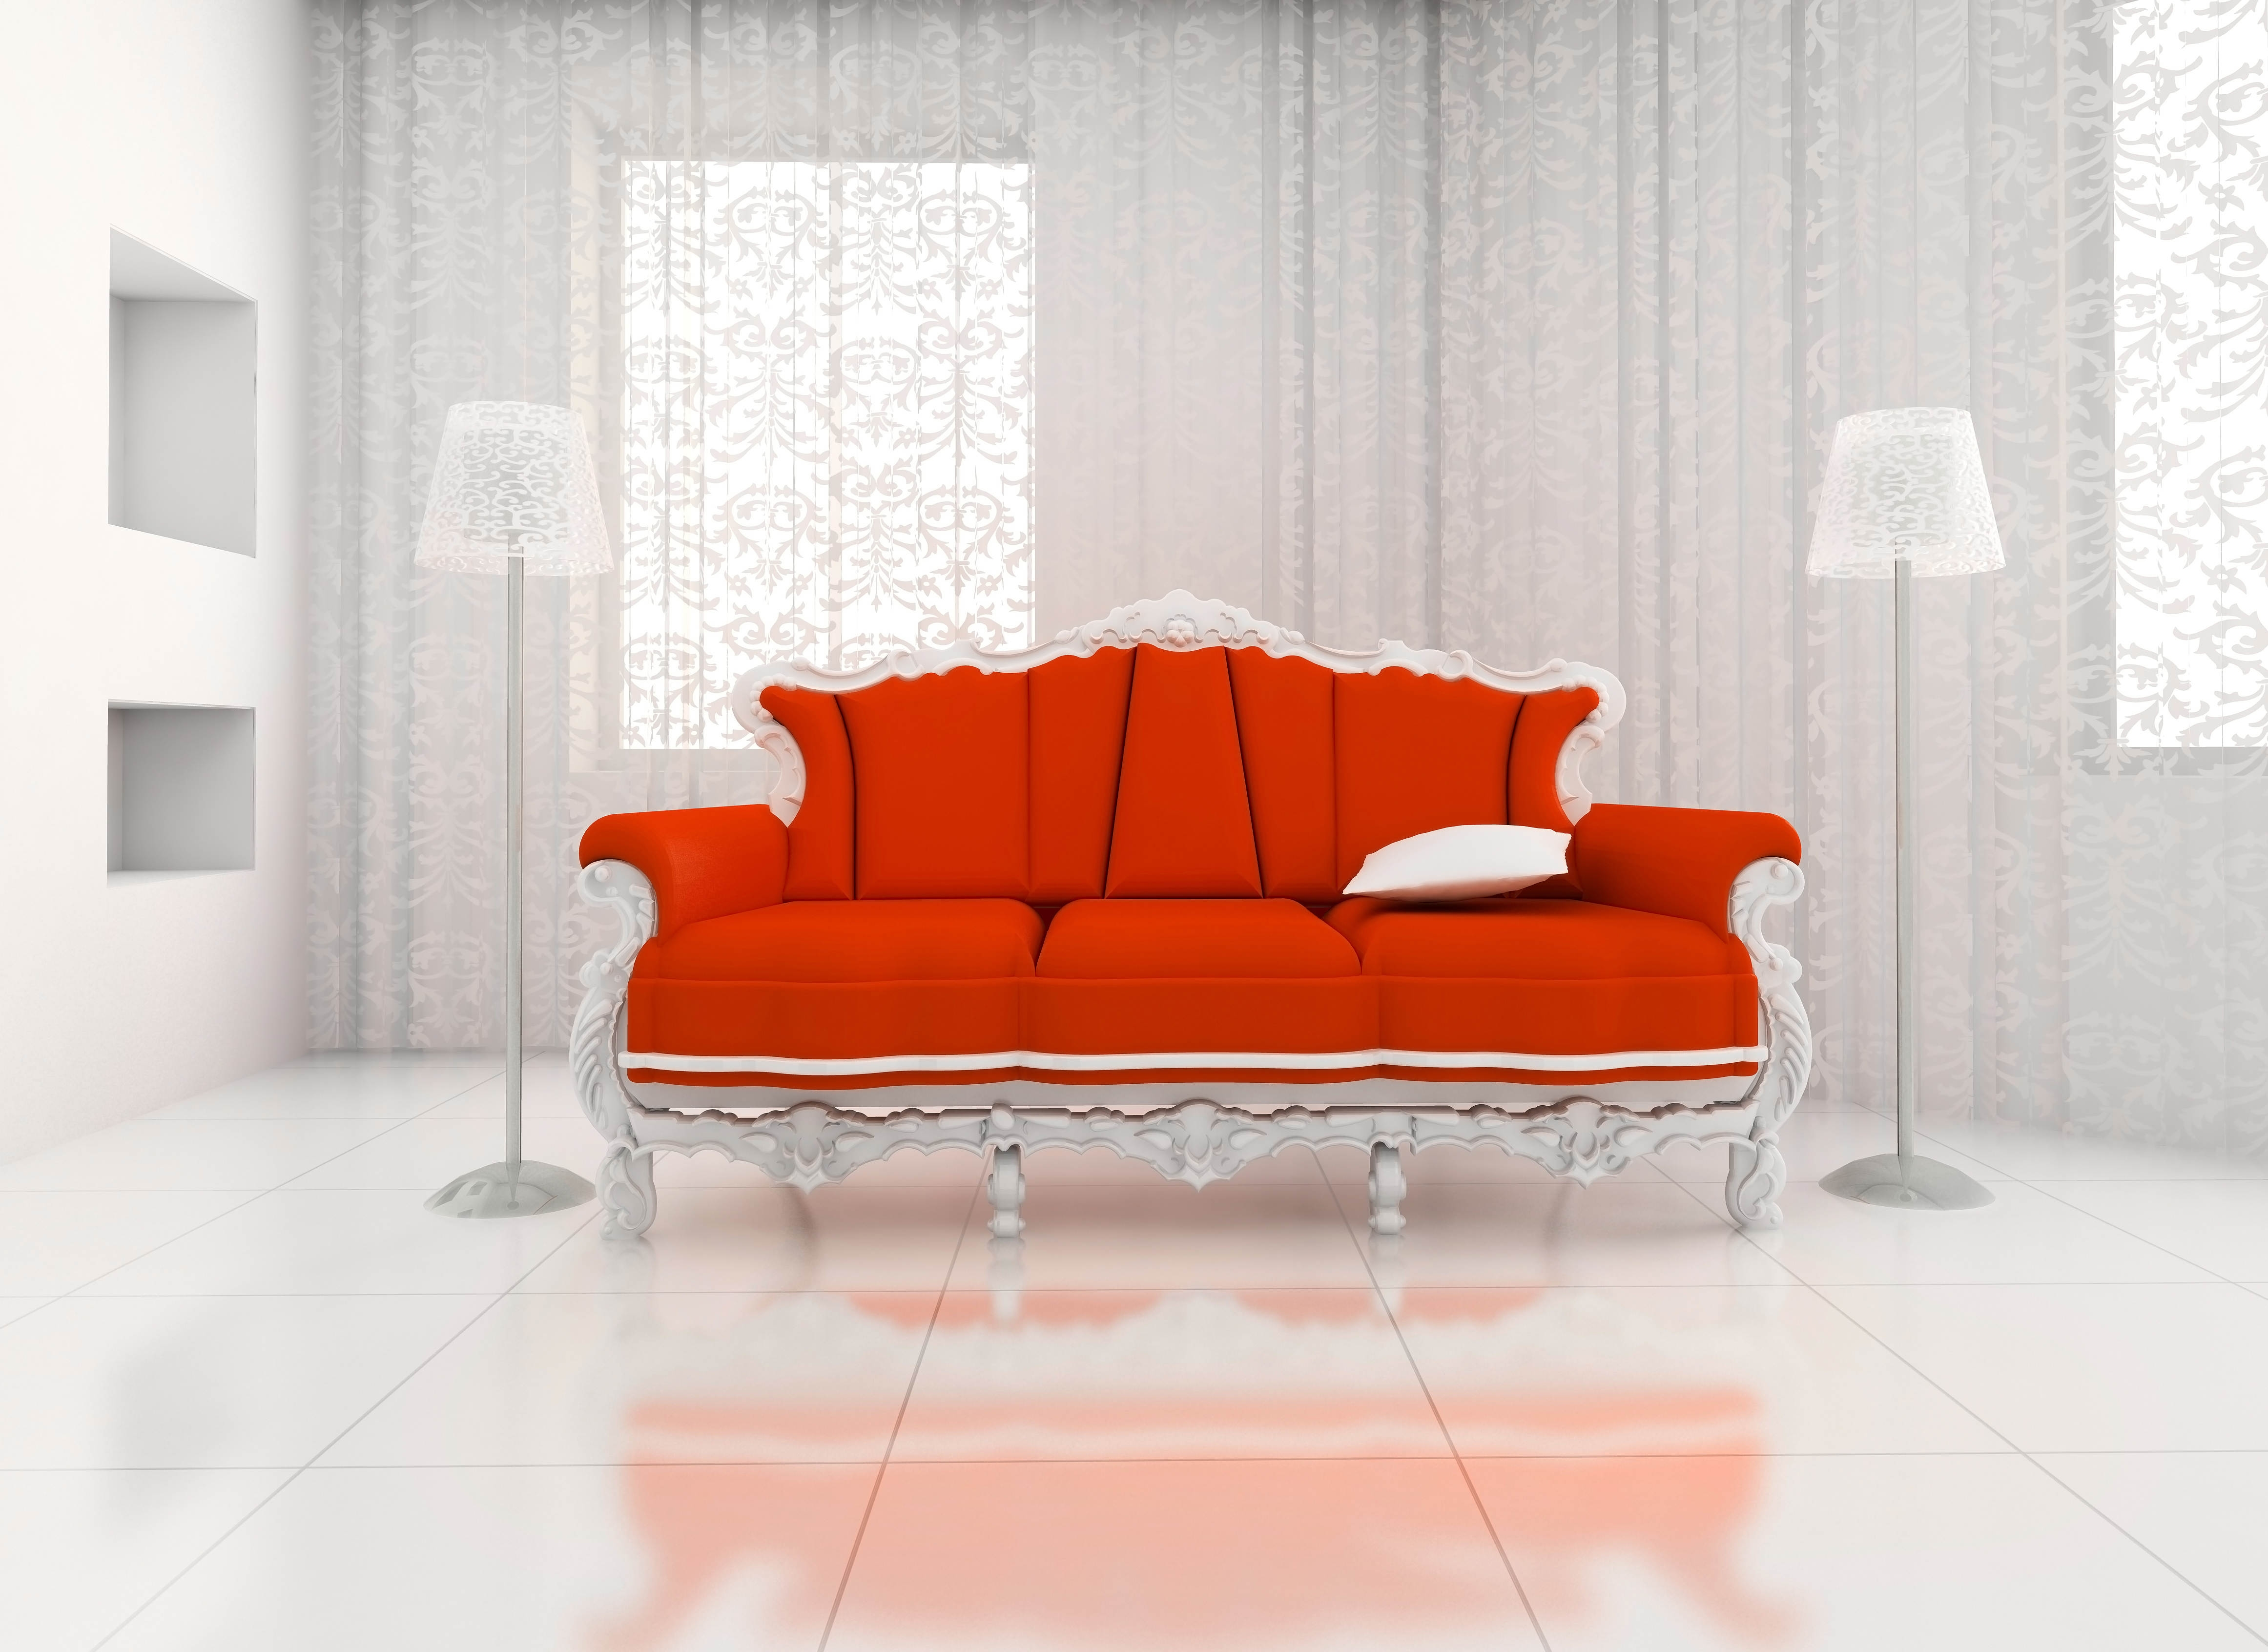 98938 Screensavers and Wallpapers Room for phone. Download Miscellanea, Miscellaneous, Sofa, Room, Light Fixtures, Lights, Curtains pictures for free